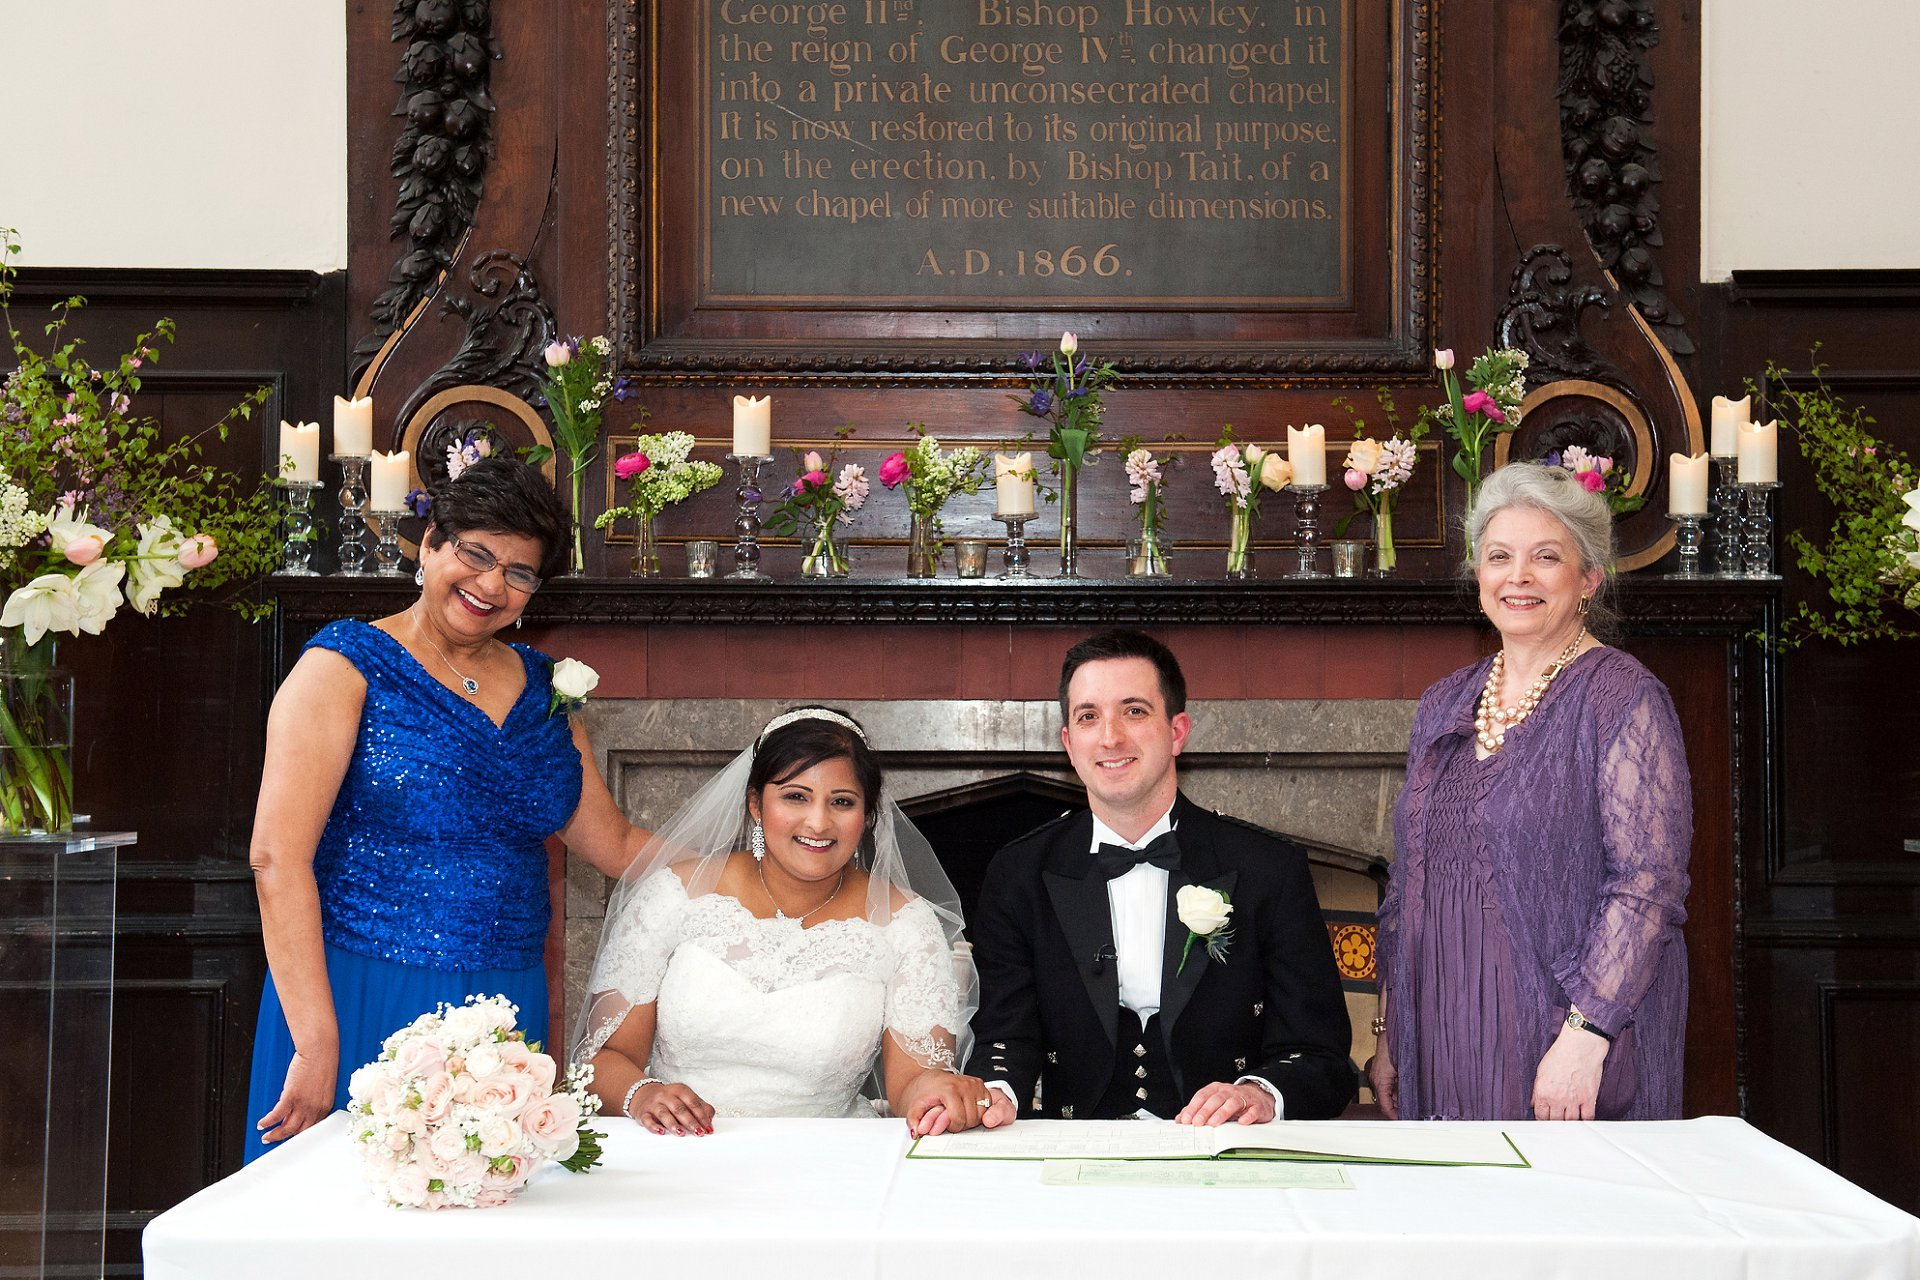 Bride & Groom and their mothers during signing of the register in the Great Hall at Fulham Palace